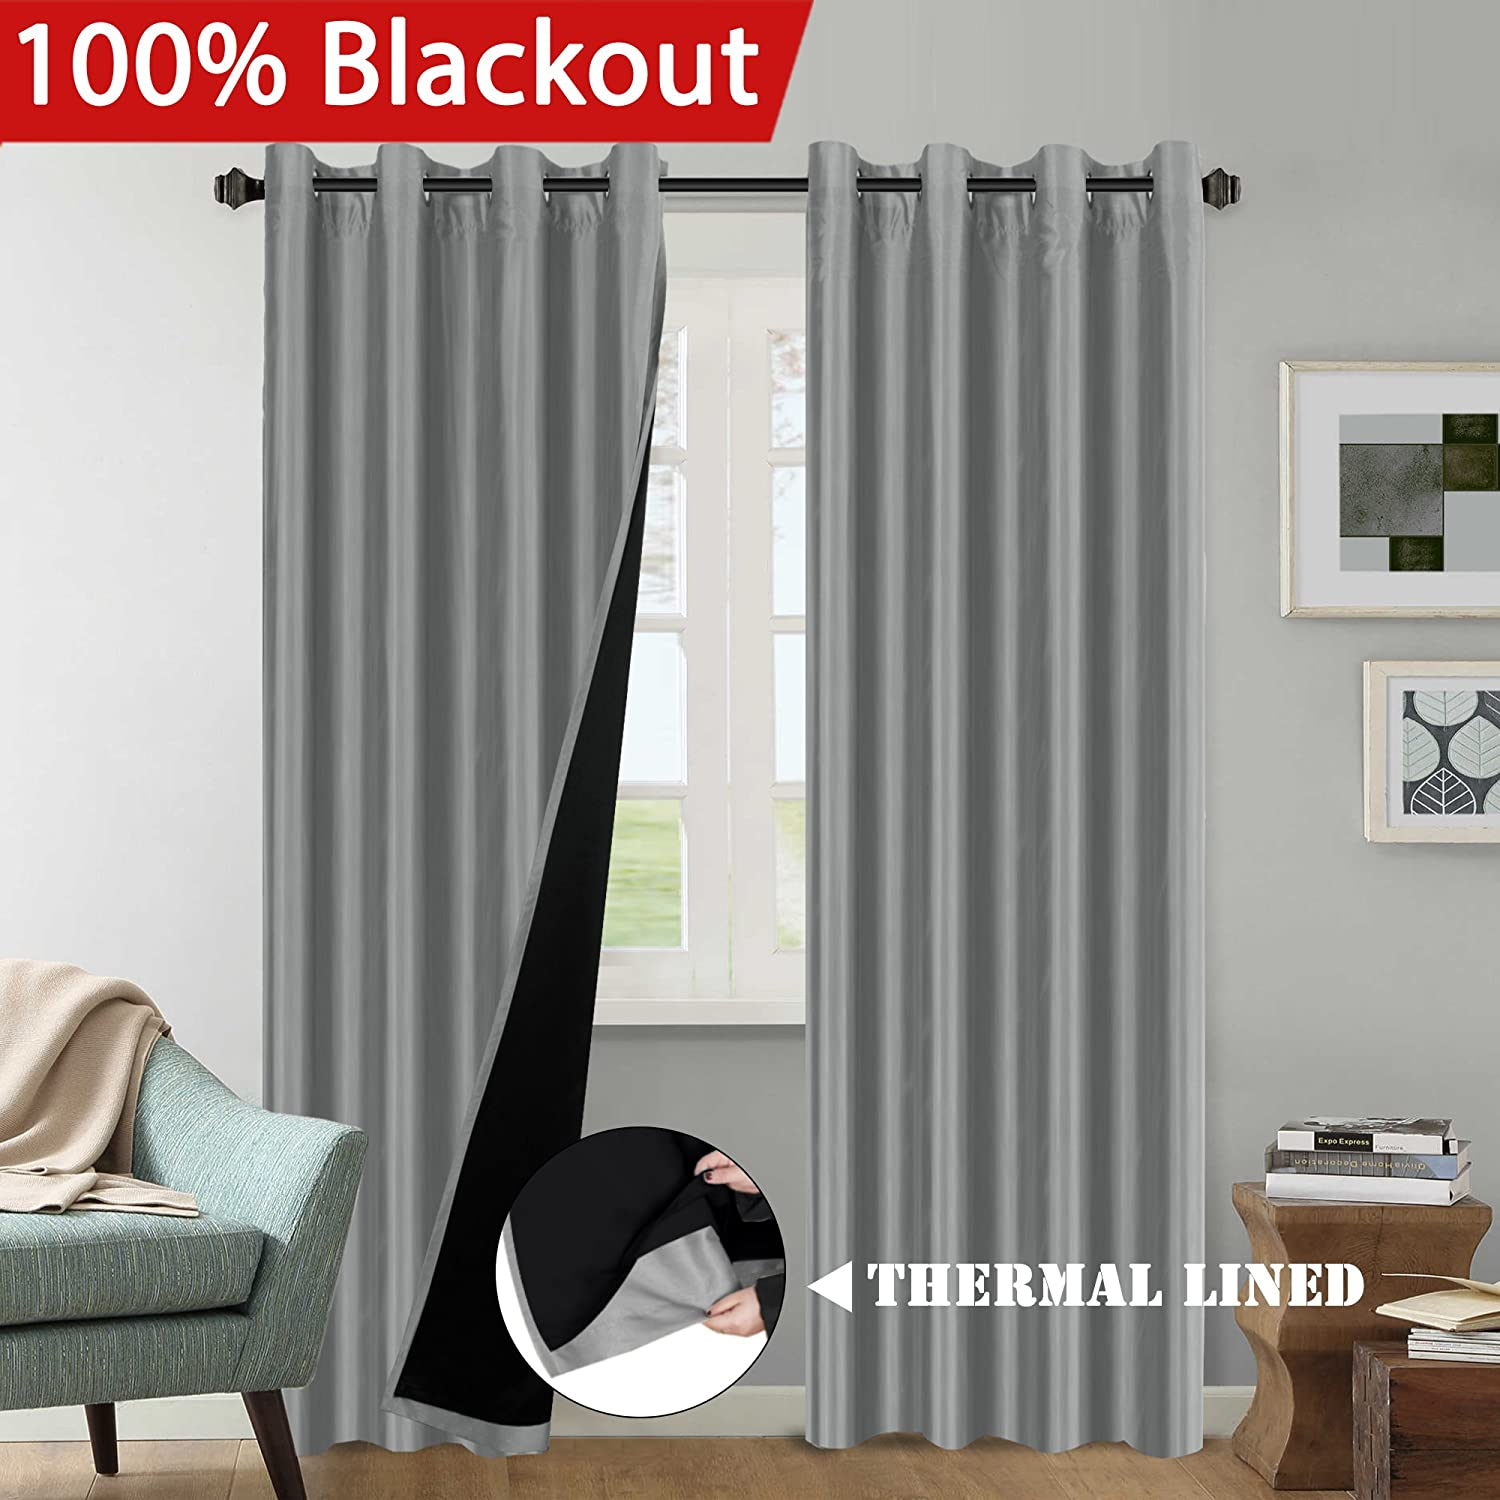 ece5e8053741f5 H.VERSAILTEX Premium Full Blackout Curtains Elegant Faux Silk Lined Grey  Curtains (2 Panels), Thermal Insulated Heavy-Duty Full Light Shading Drapes  for ...